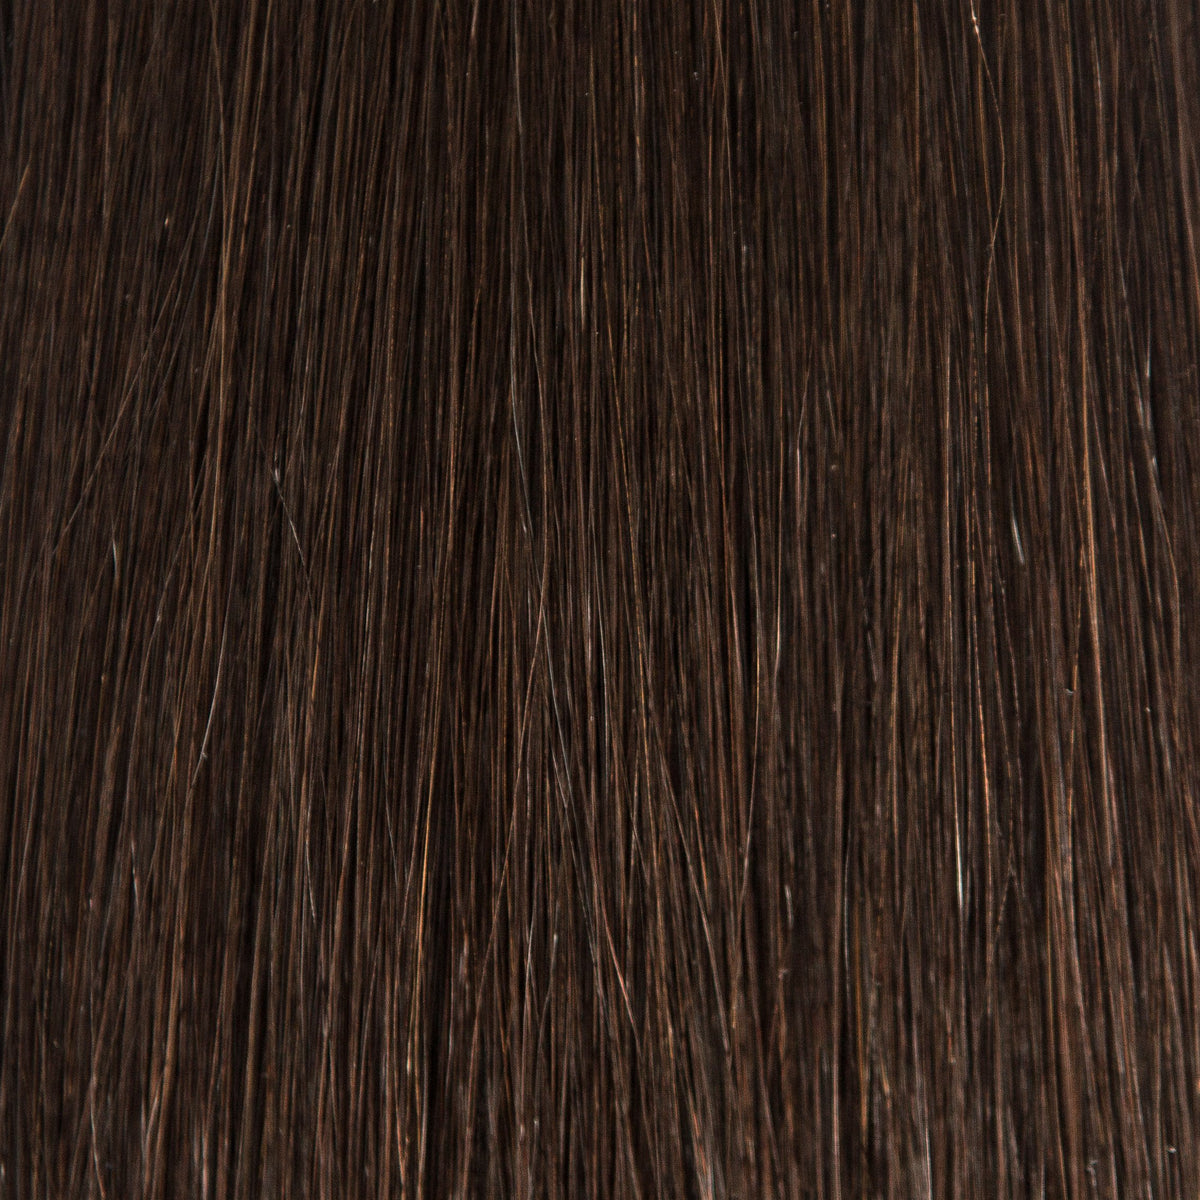 Laced Hair Keratin Bond Extensions #1B (Dark Roast)